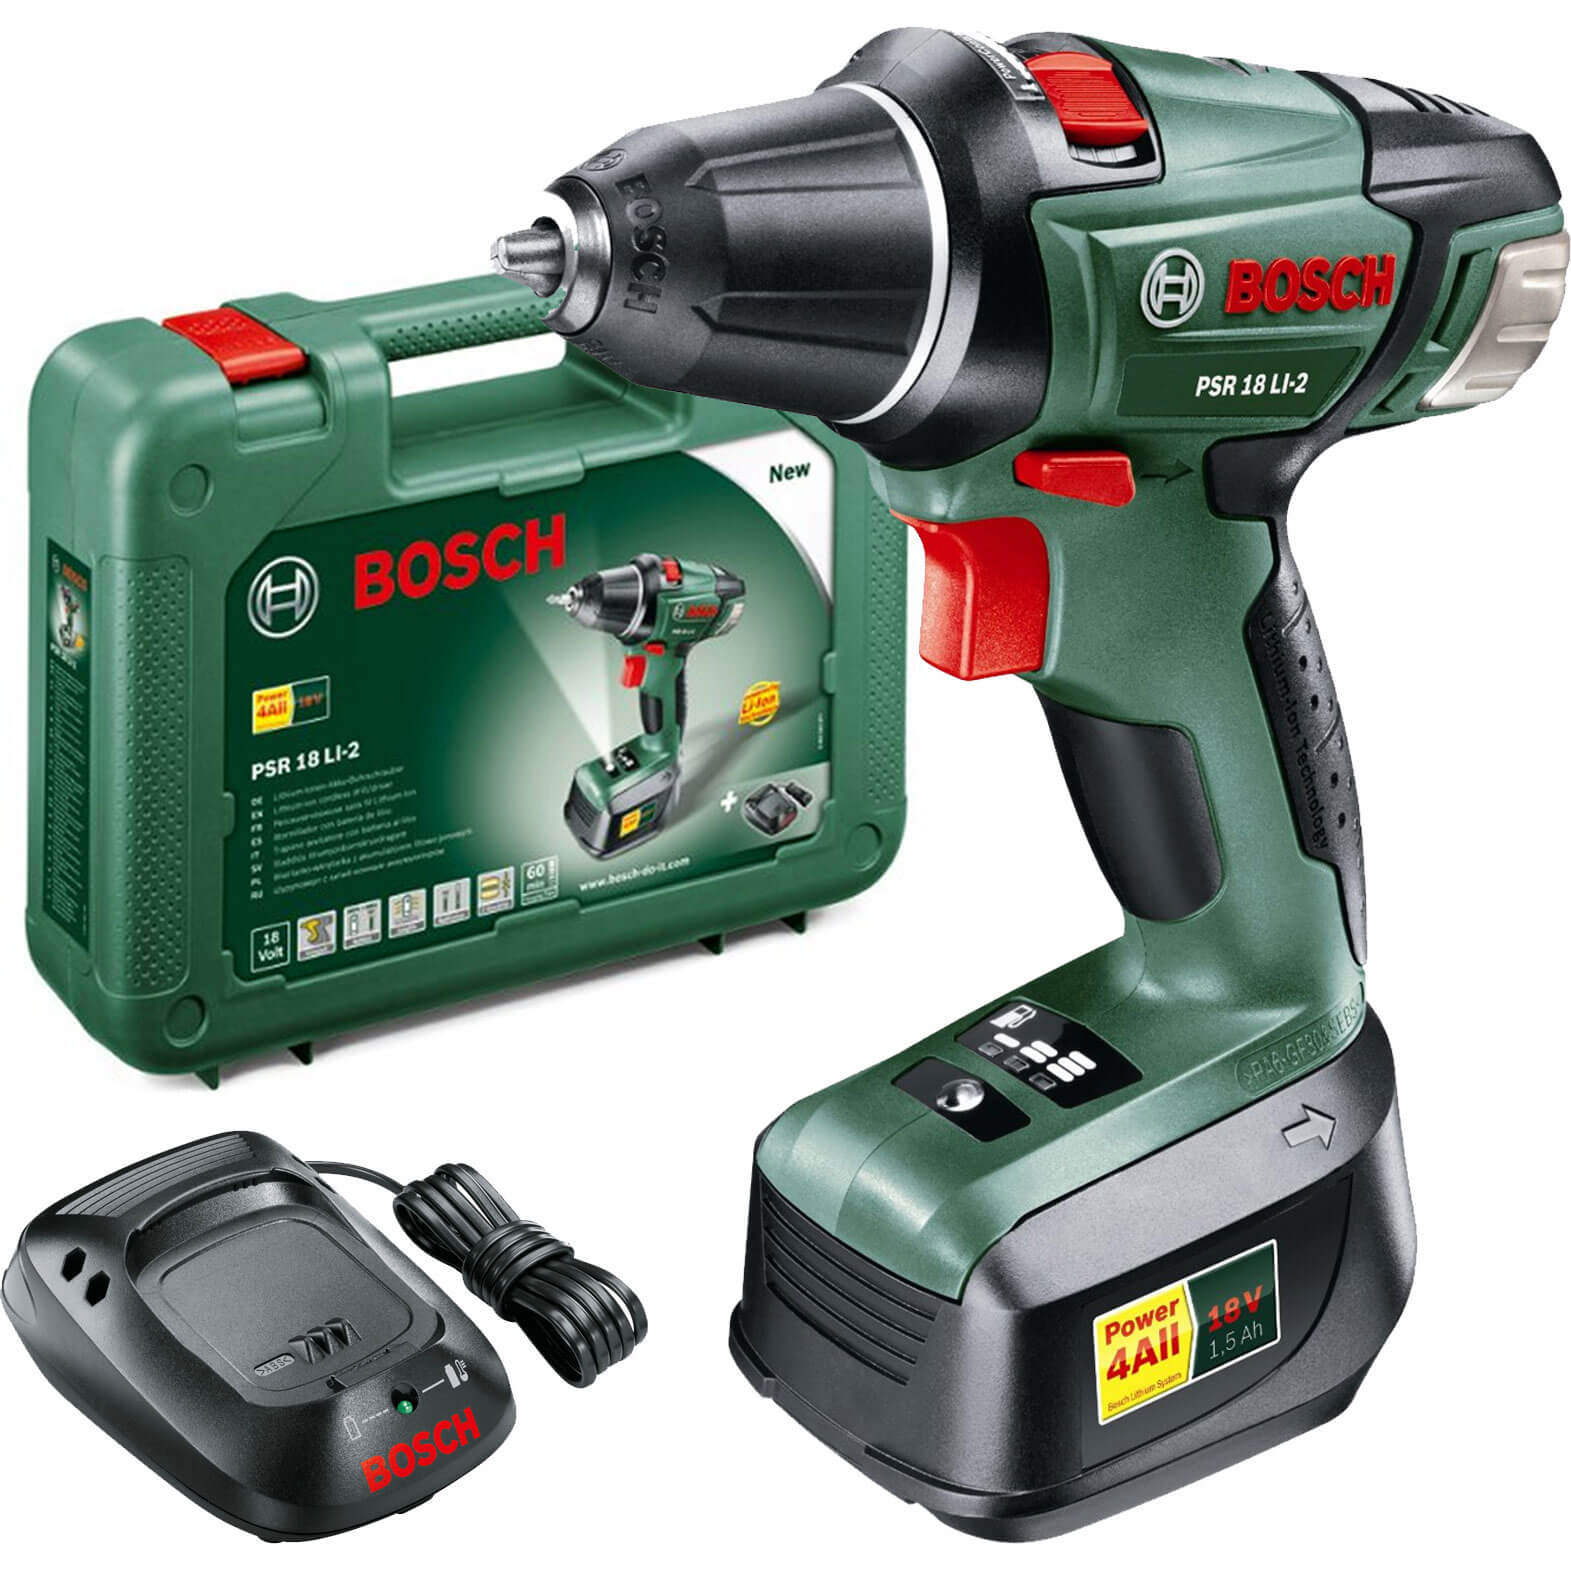 bosch power4all psr 18 li 2 18v cordless compact drill. Black Bedroom Furniture Sets. Home Design Ideas